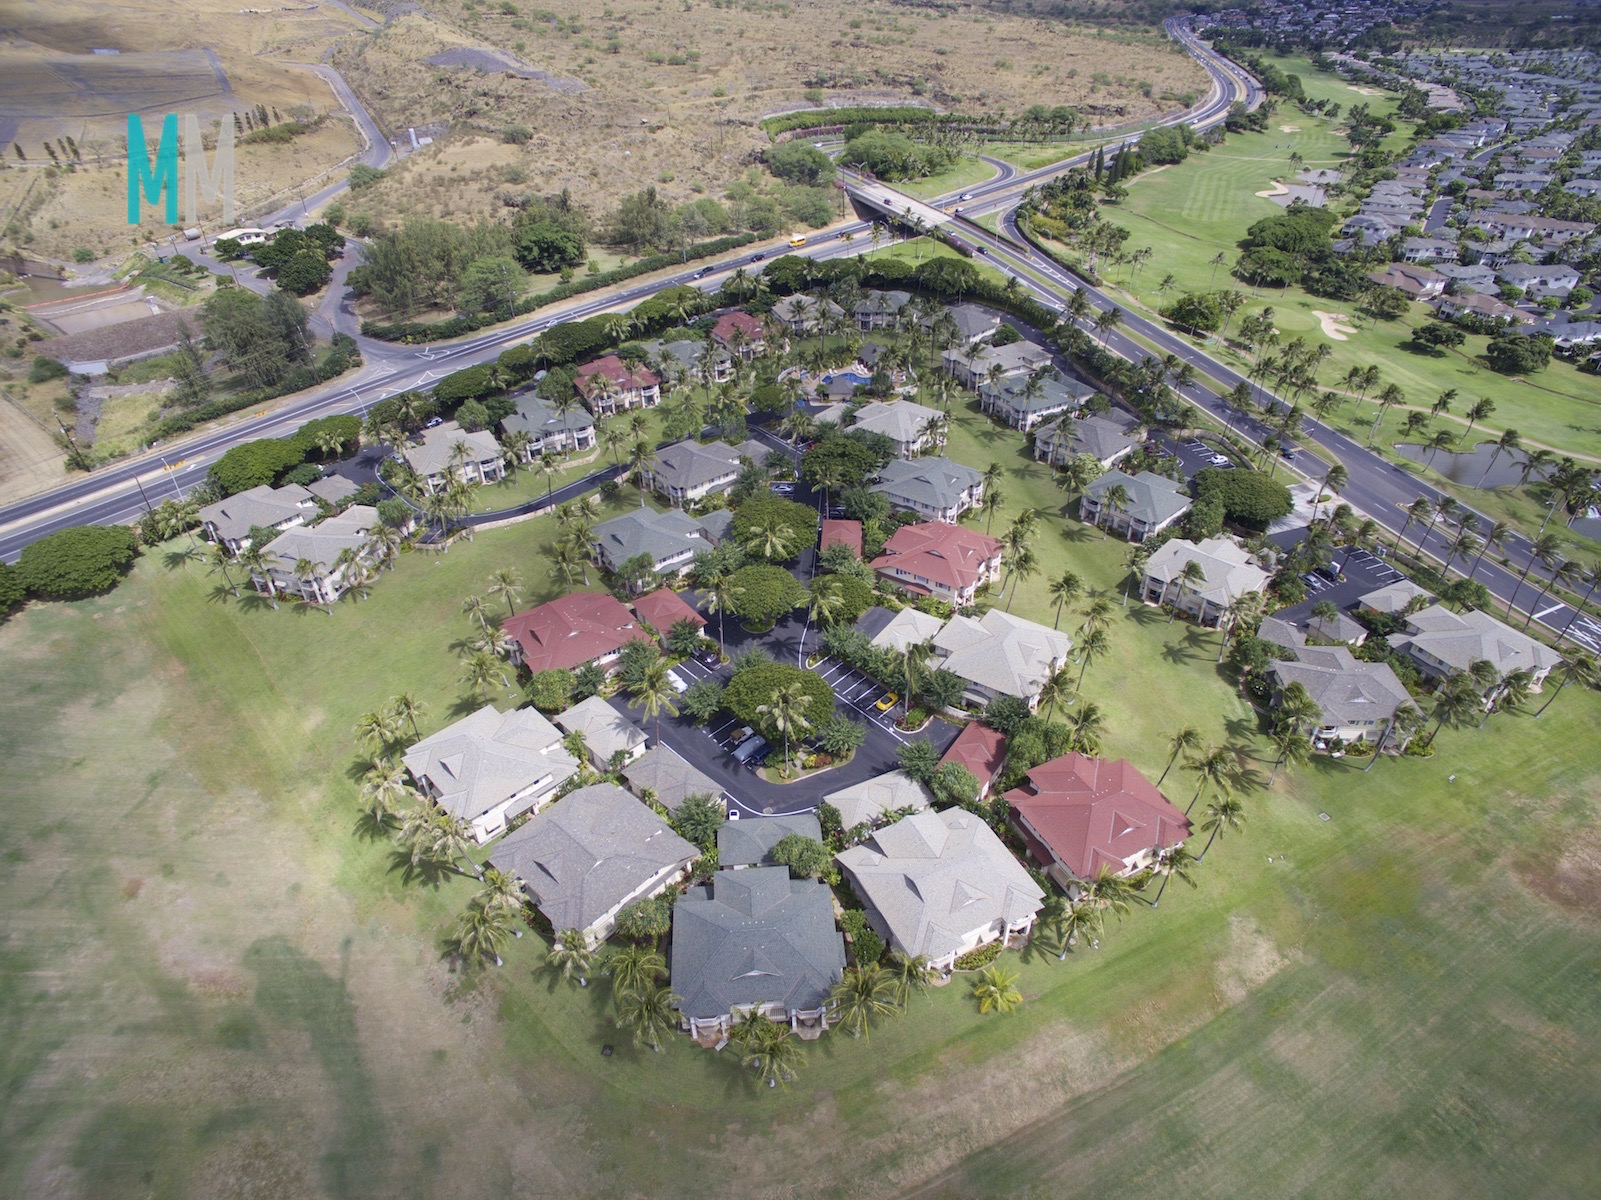 kai-lani-ko-olina-aerial-view-munro-murdock-hawaii-real-estate-dji_0039